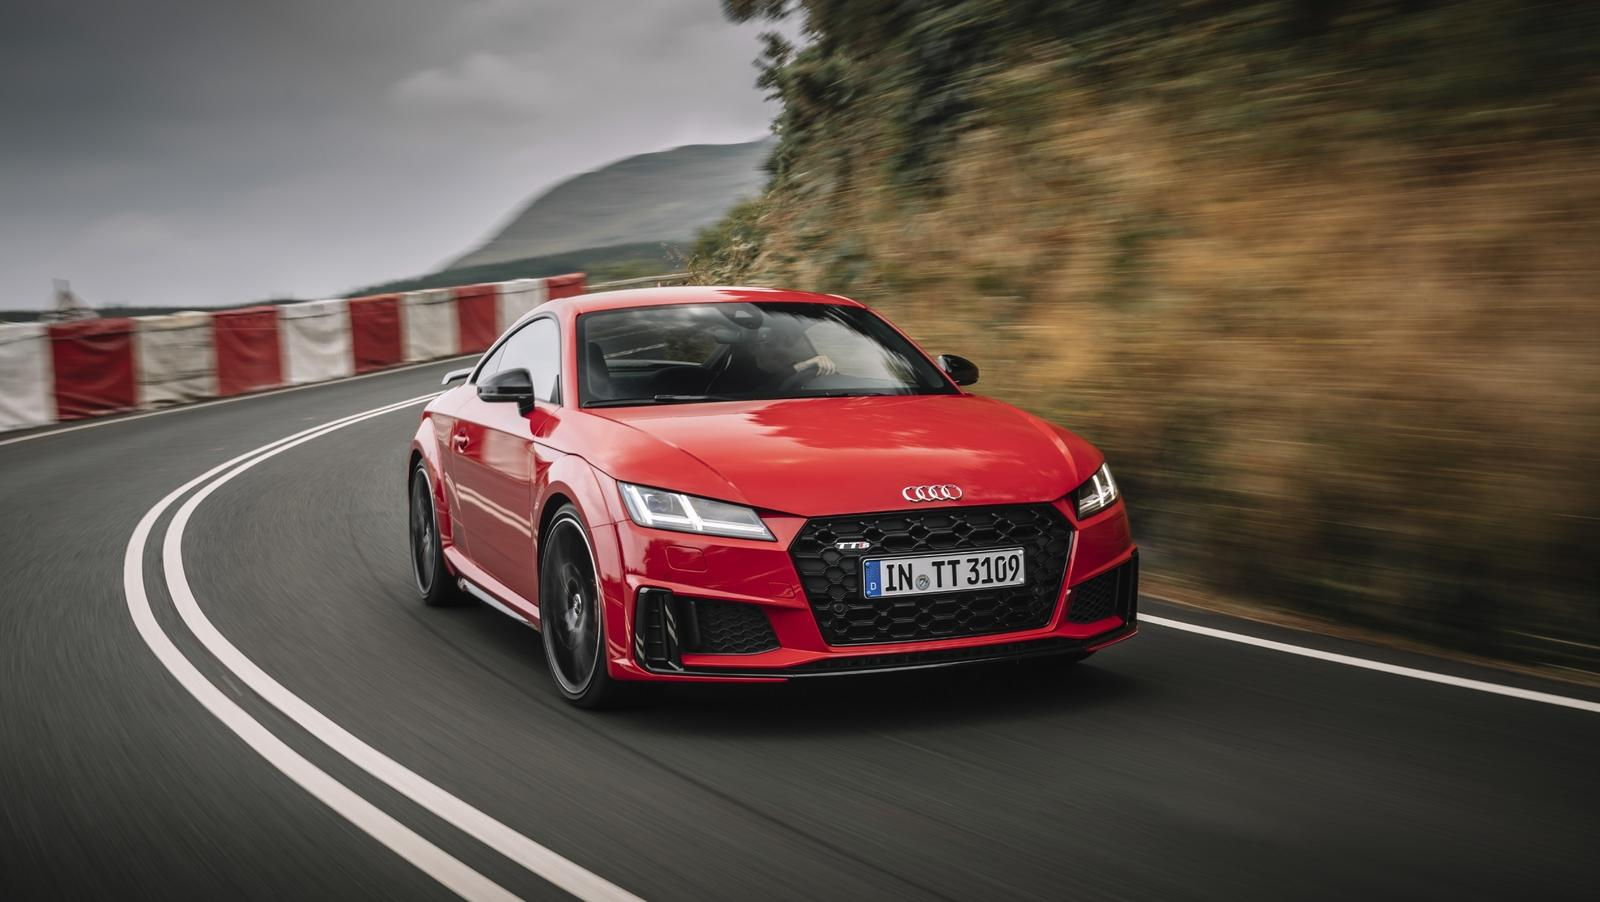 Audi Tt Latest News Reviews Specifications Prices Photos And Videos Top Speed